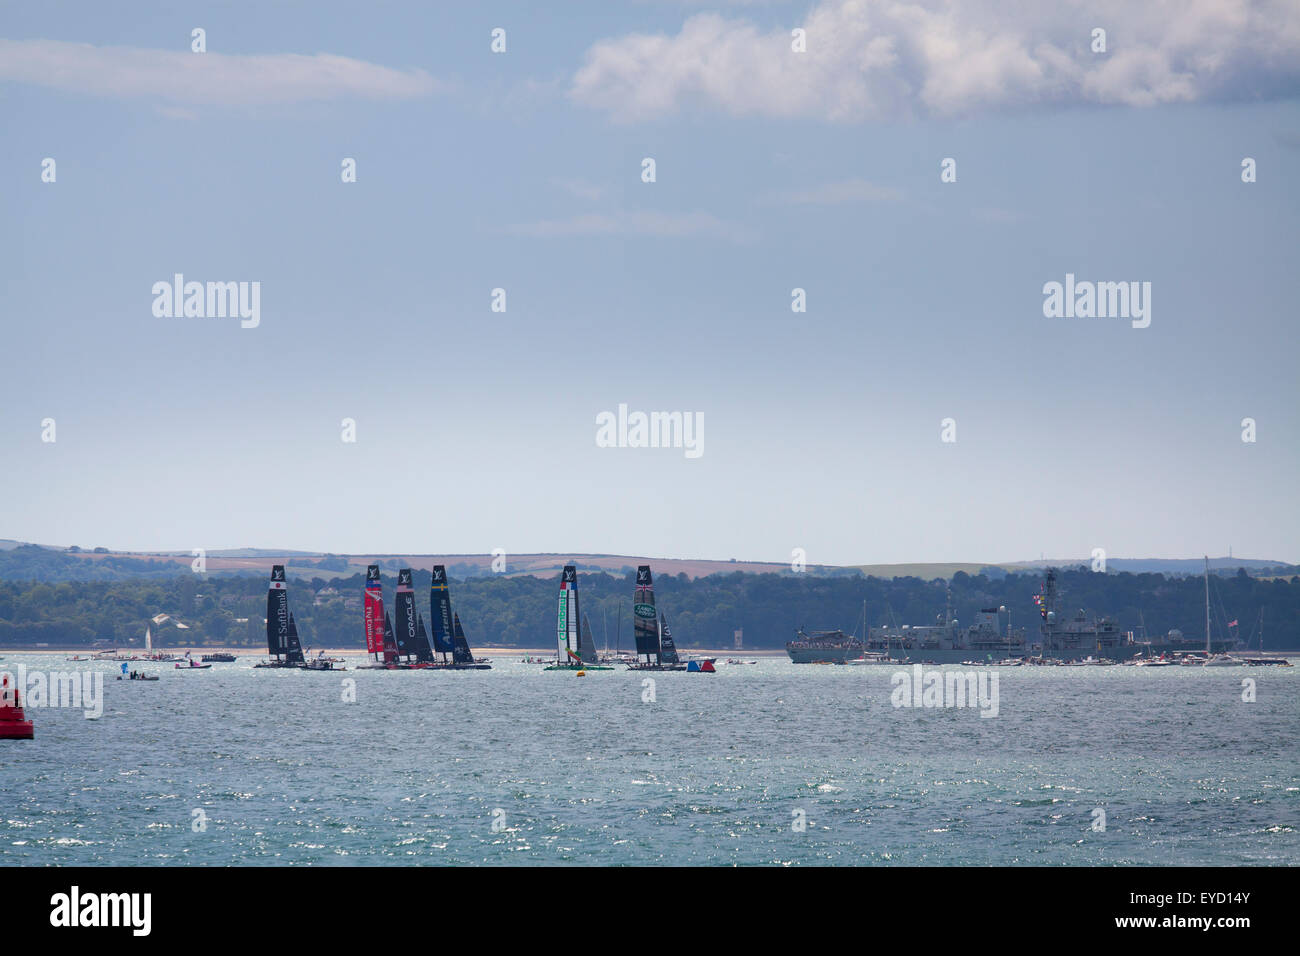 Admirals Cup races off Portsmouth on Saturday 25 July 2015 Racing begins - Stock Image